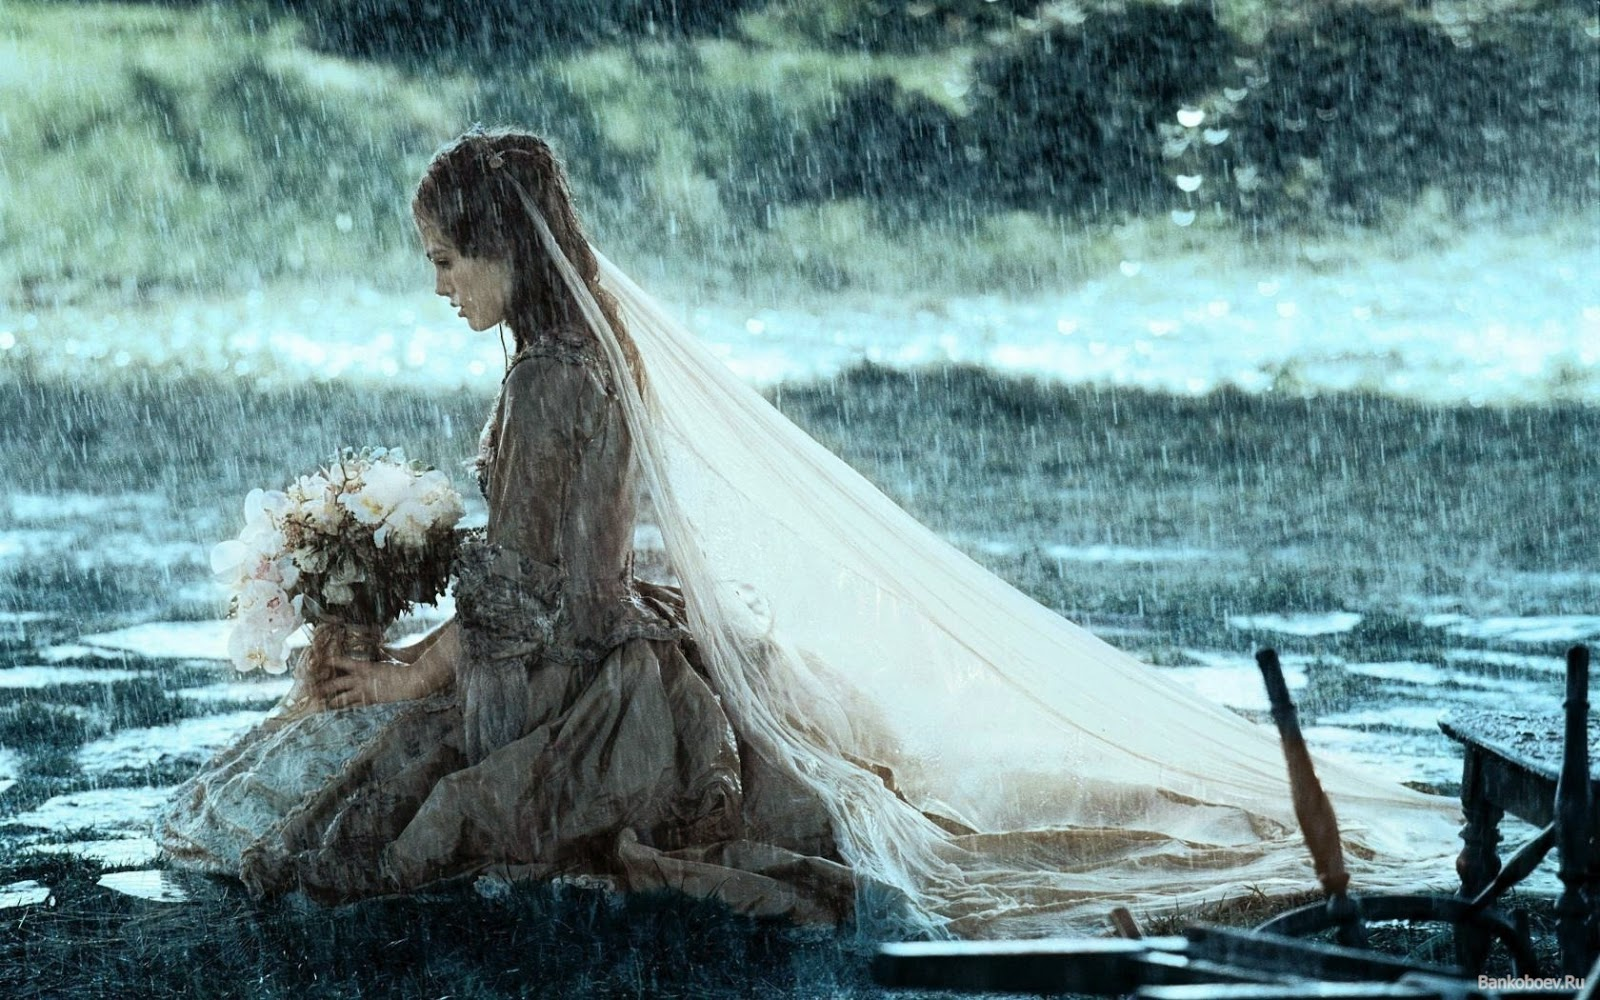 Sad-lonely-bride-girl-alone-crying-in-rain-image-picture-1680x1050.jpg